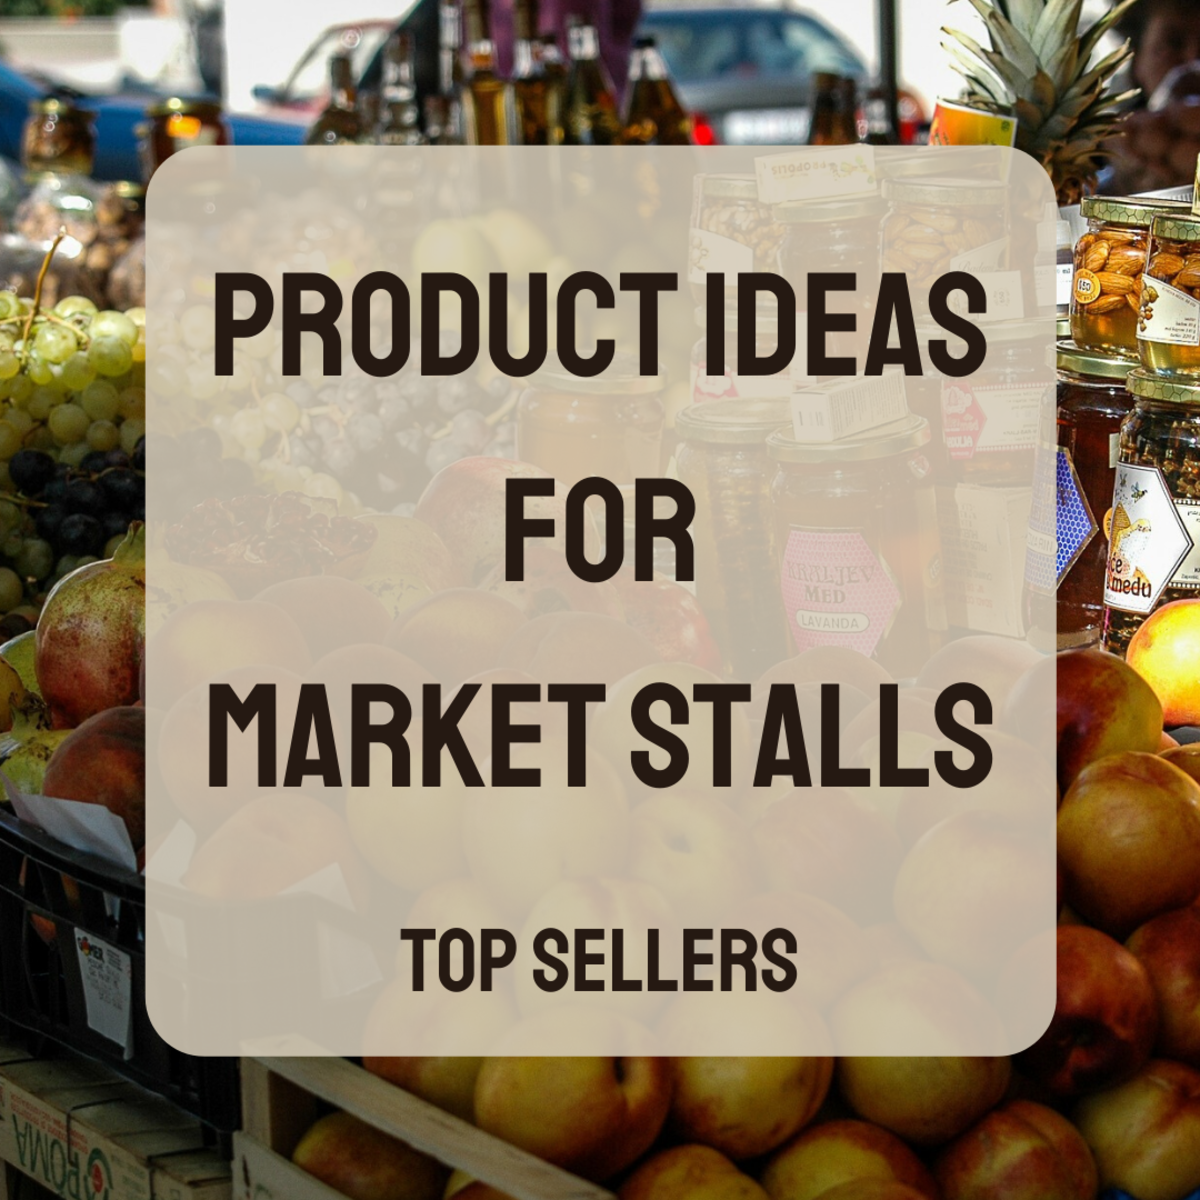 Learn about some best-selling products to try out at your market stall.